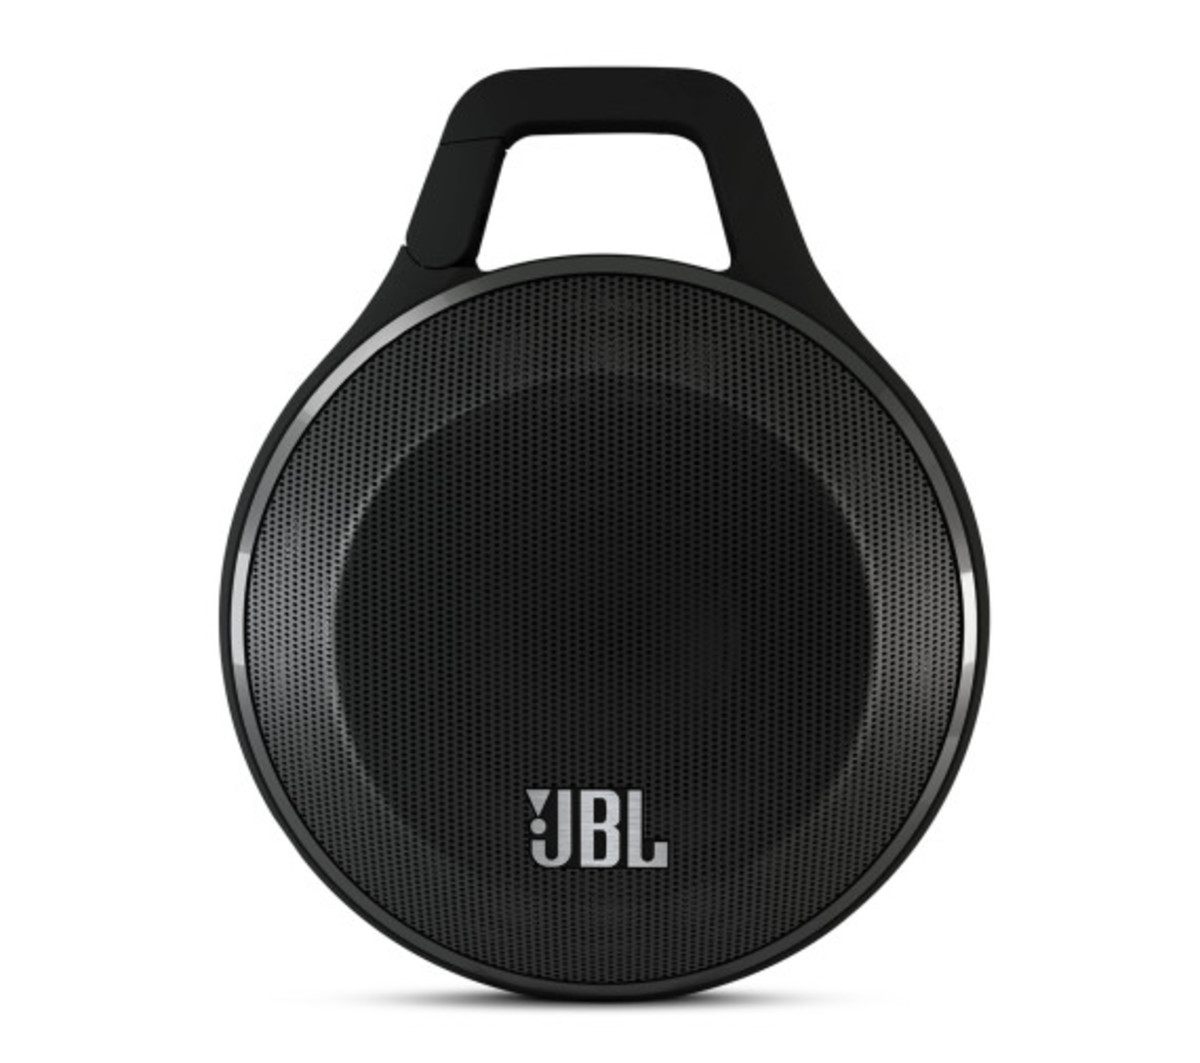 jbl-clip-ultra-compact-portable-wireless-bluetooth-speaker-06